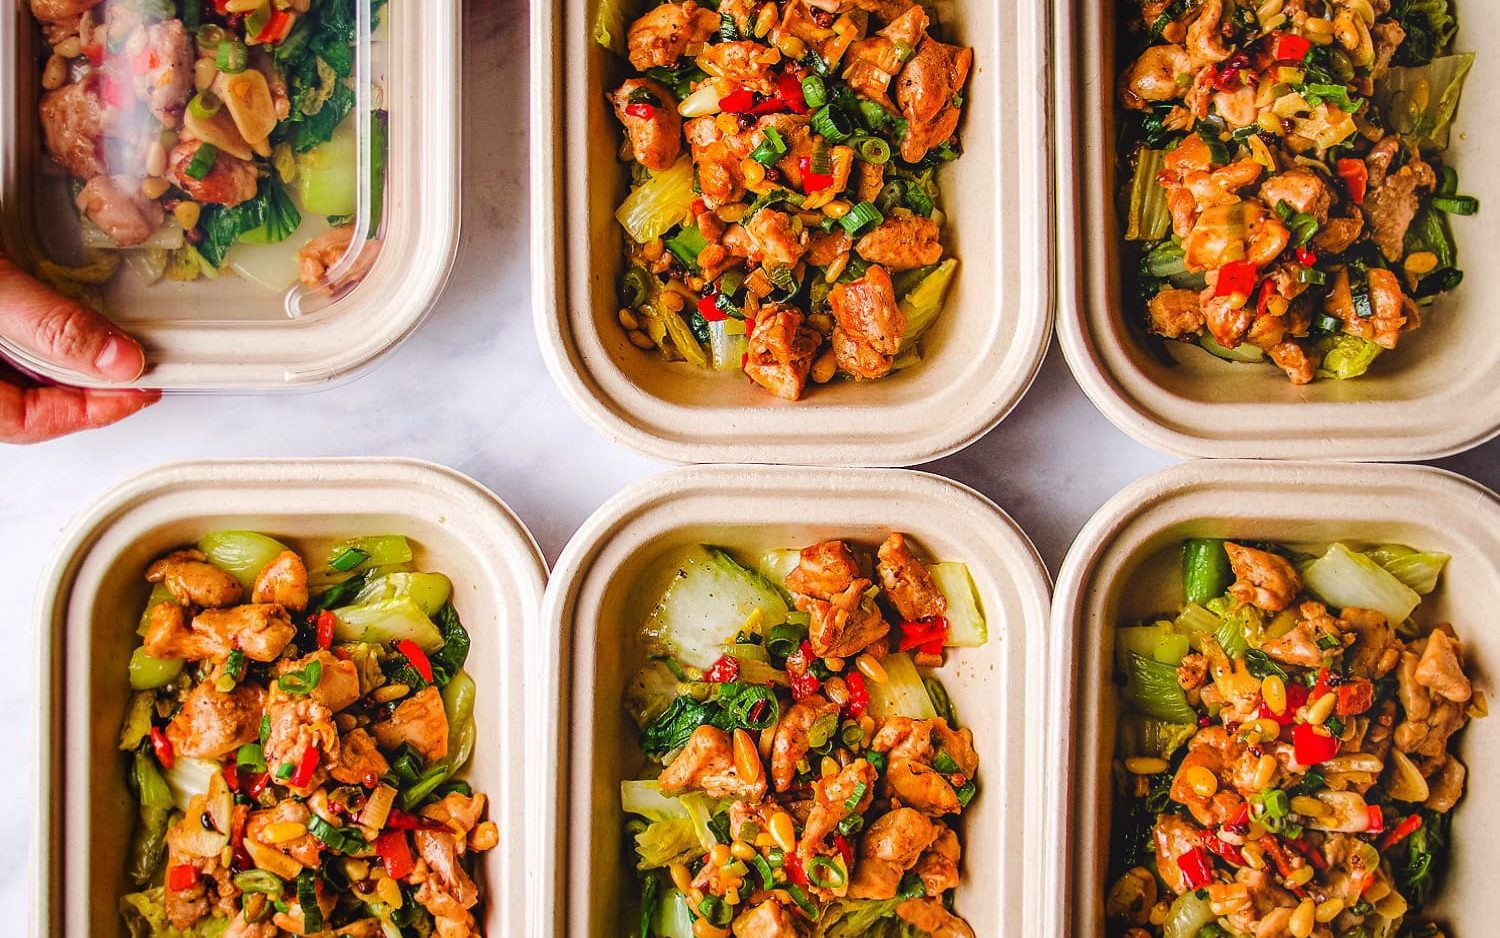 Paleo Kung Pao Chicken in meal prep boxes